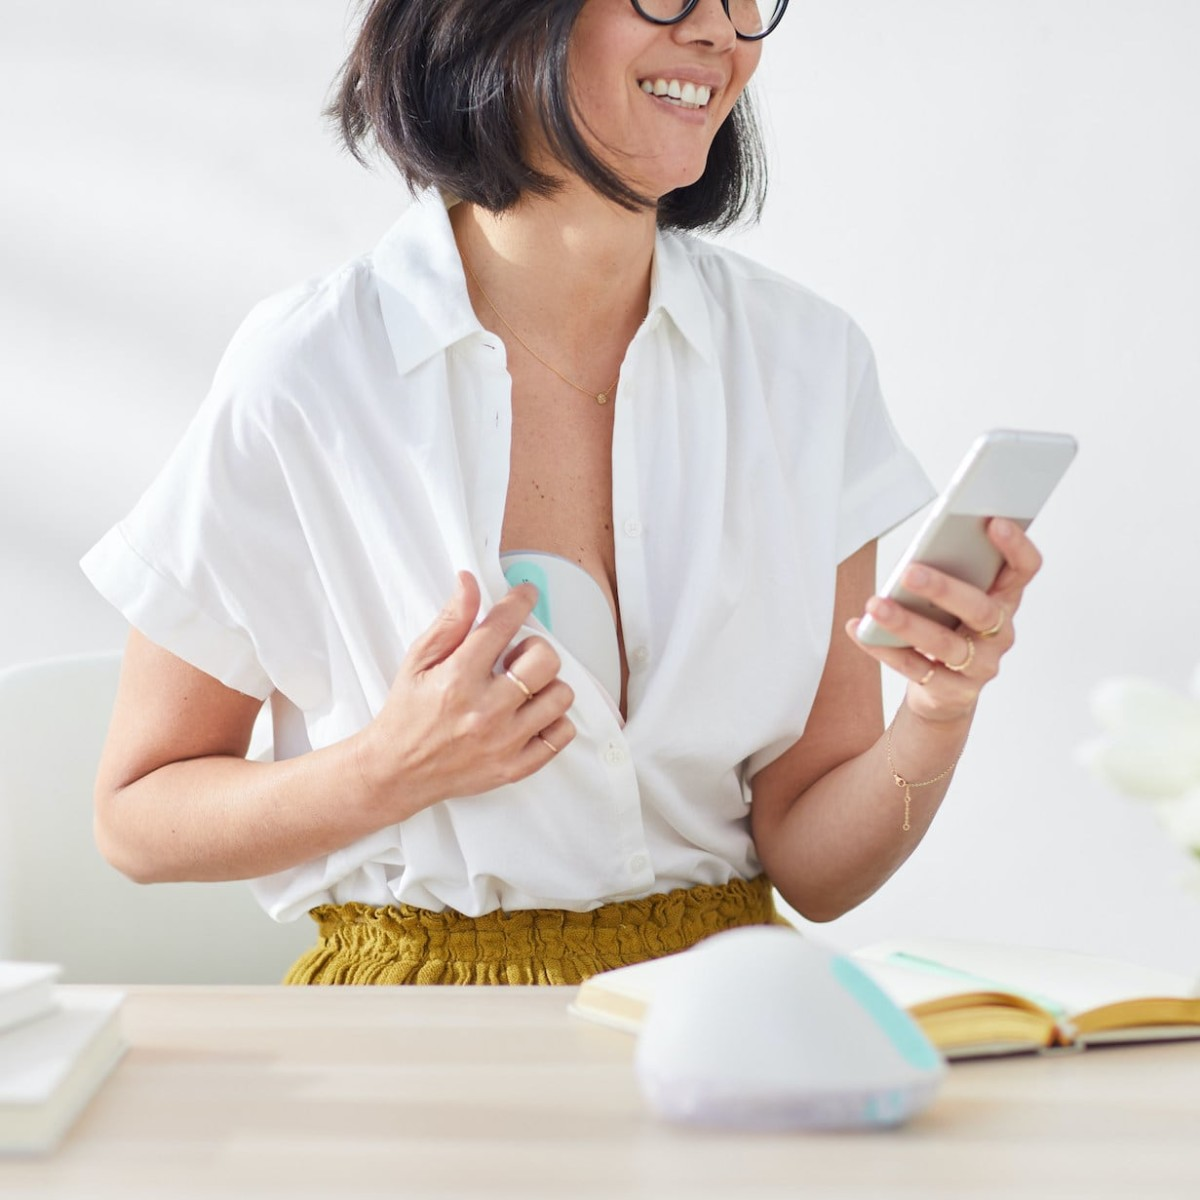 Willow Generation 3 Smart Breast Pump promises a higher milk yield